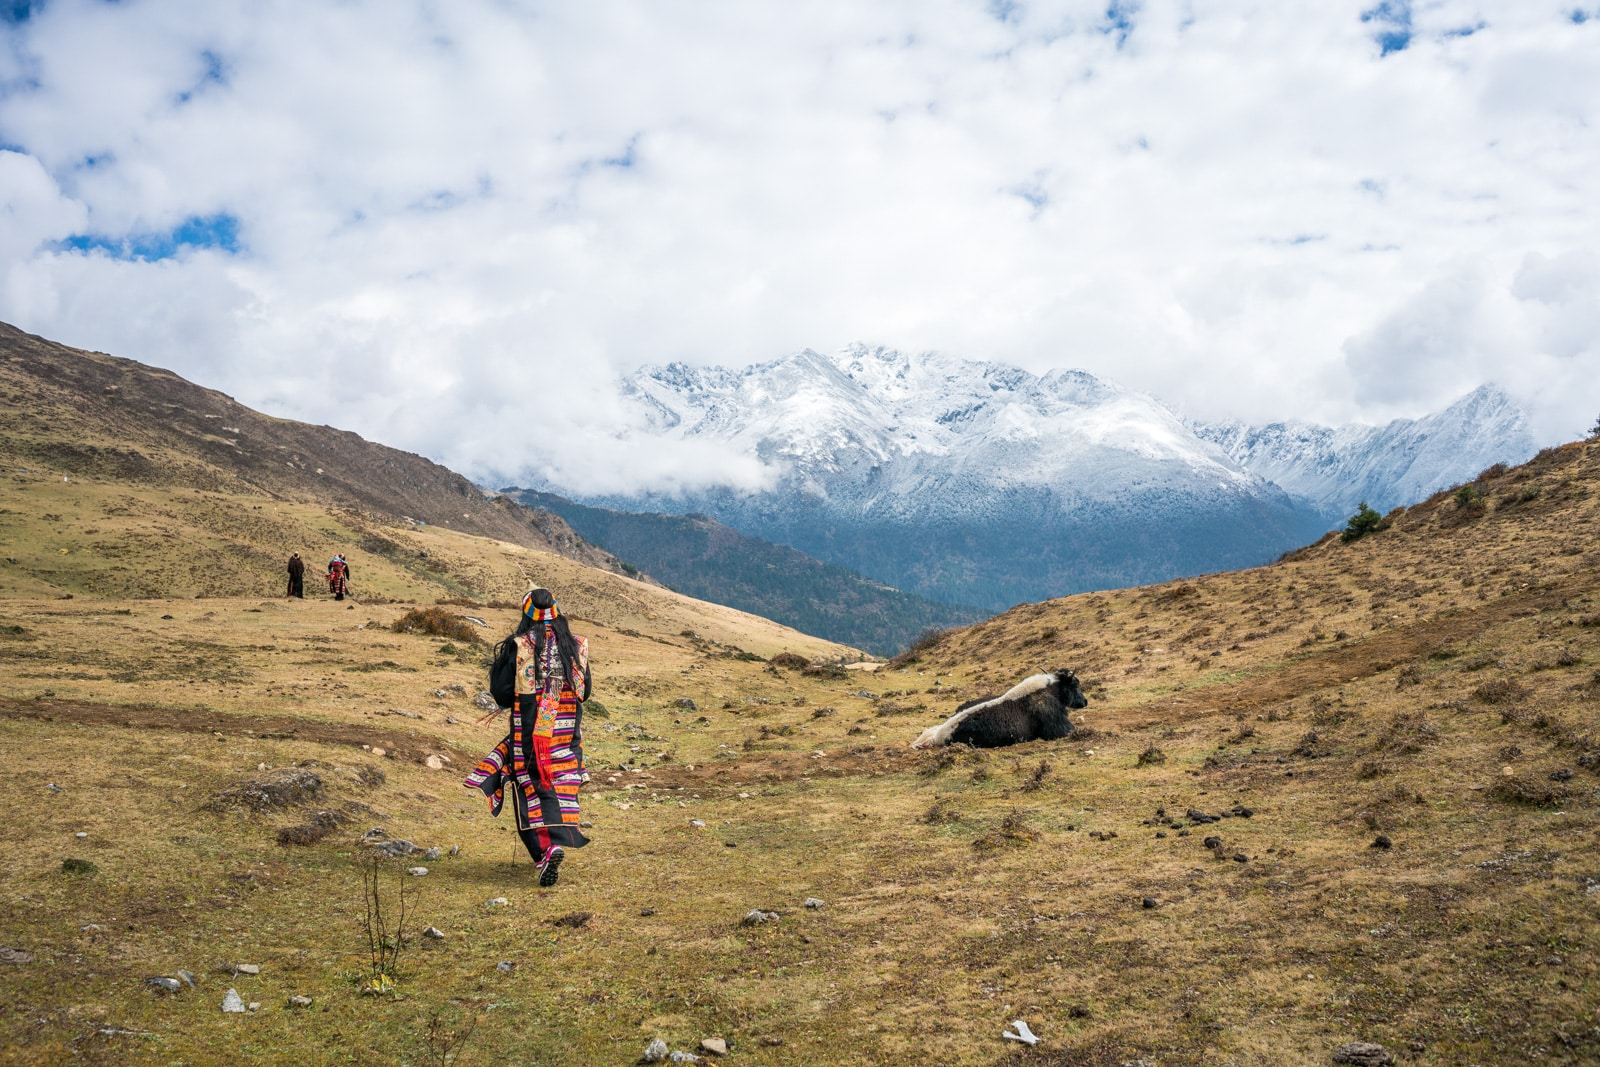 Photos of the Royal Highlander Festival in Bhutan - Layap woman in traditional clothes walking in the Himlayan mountains - Lost With Purpose travel blog